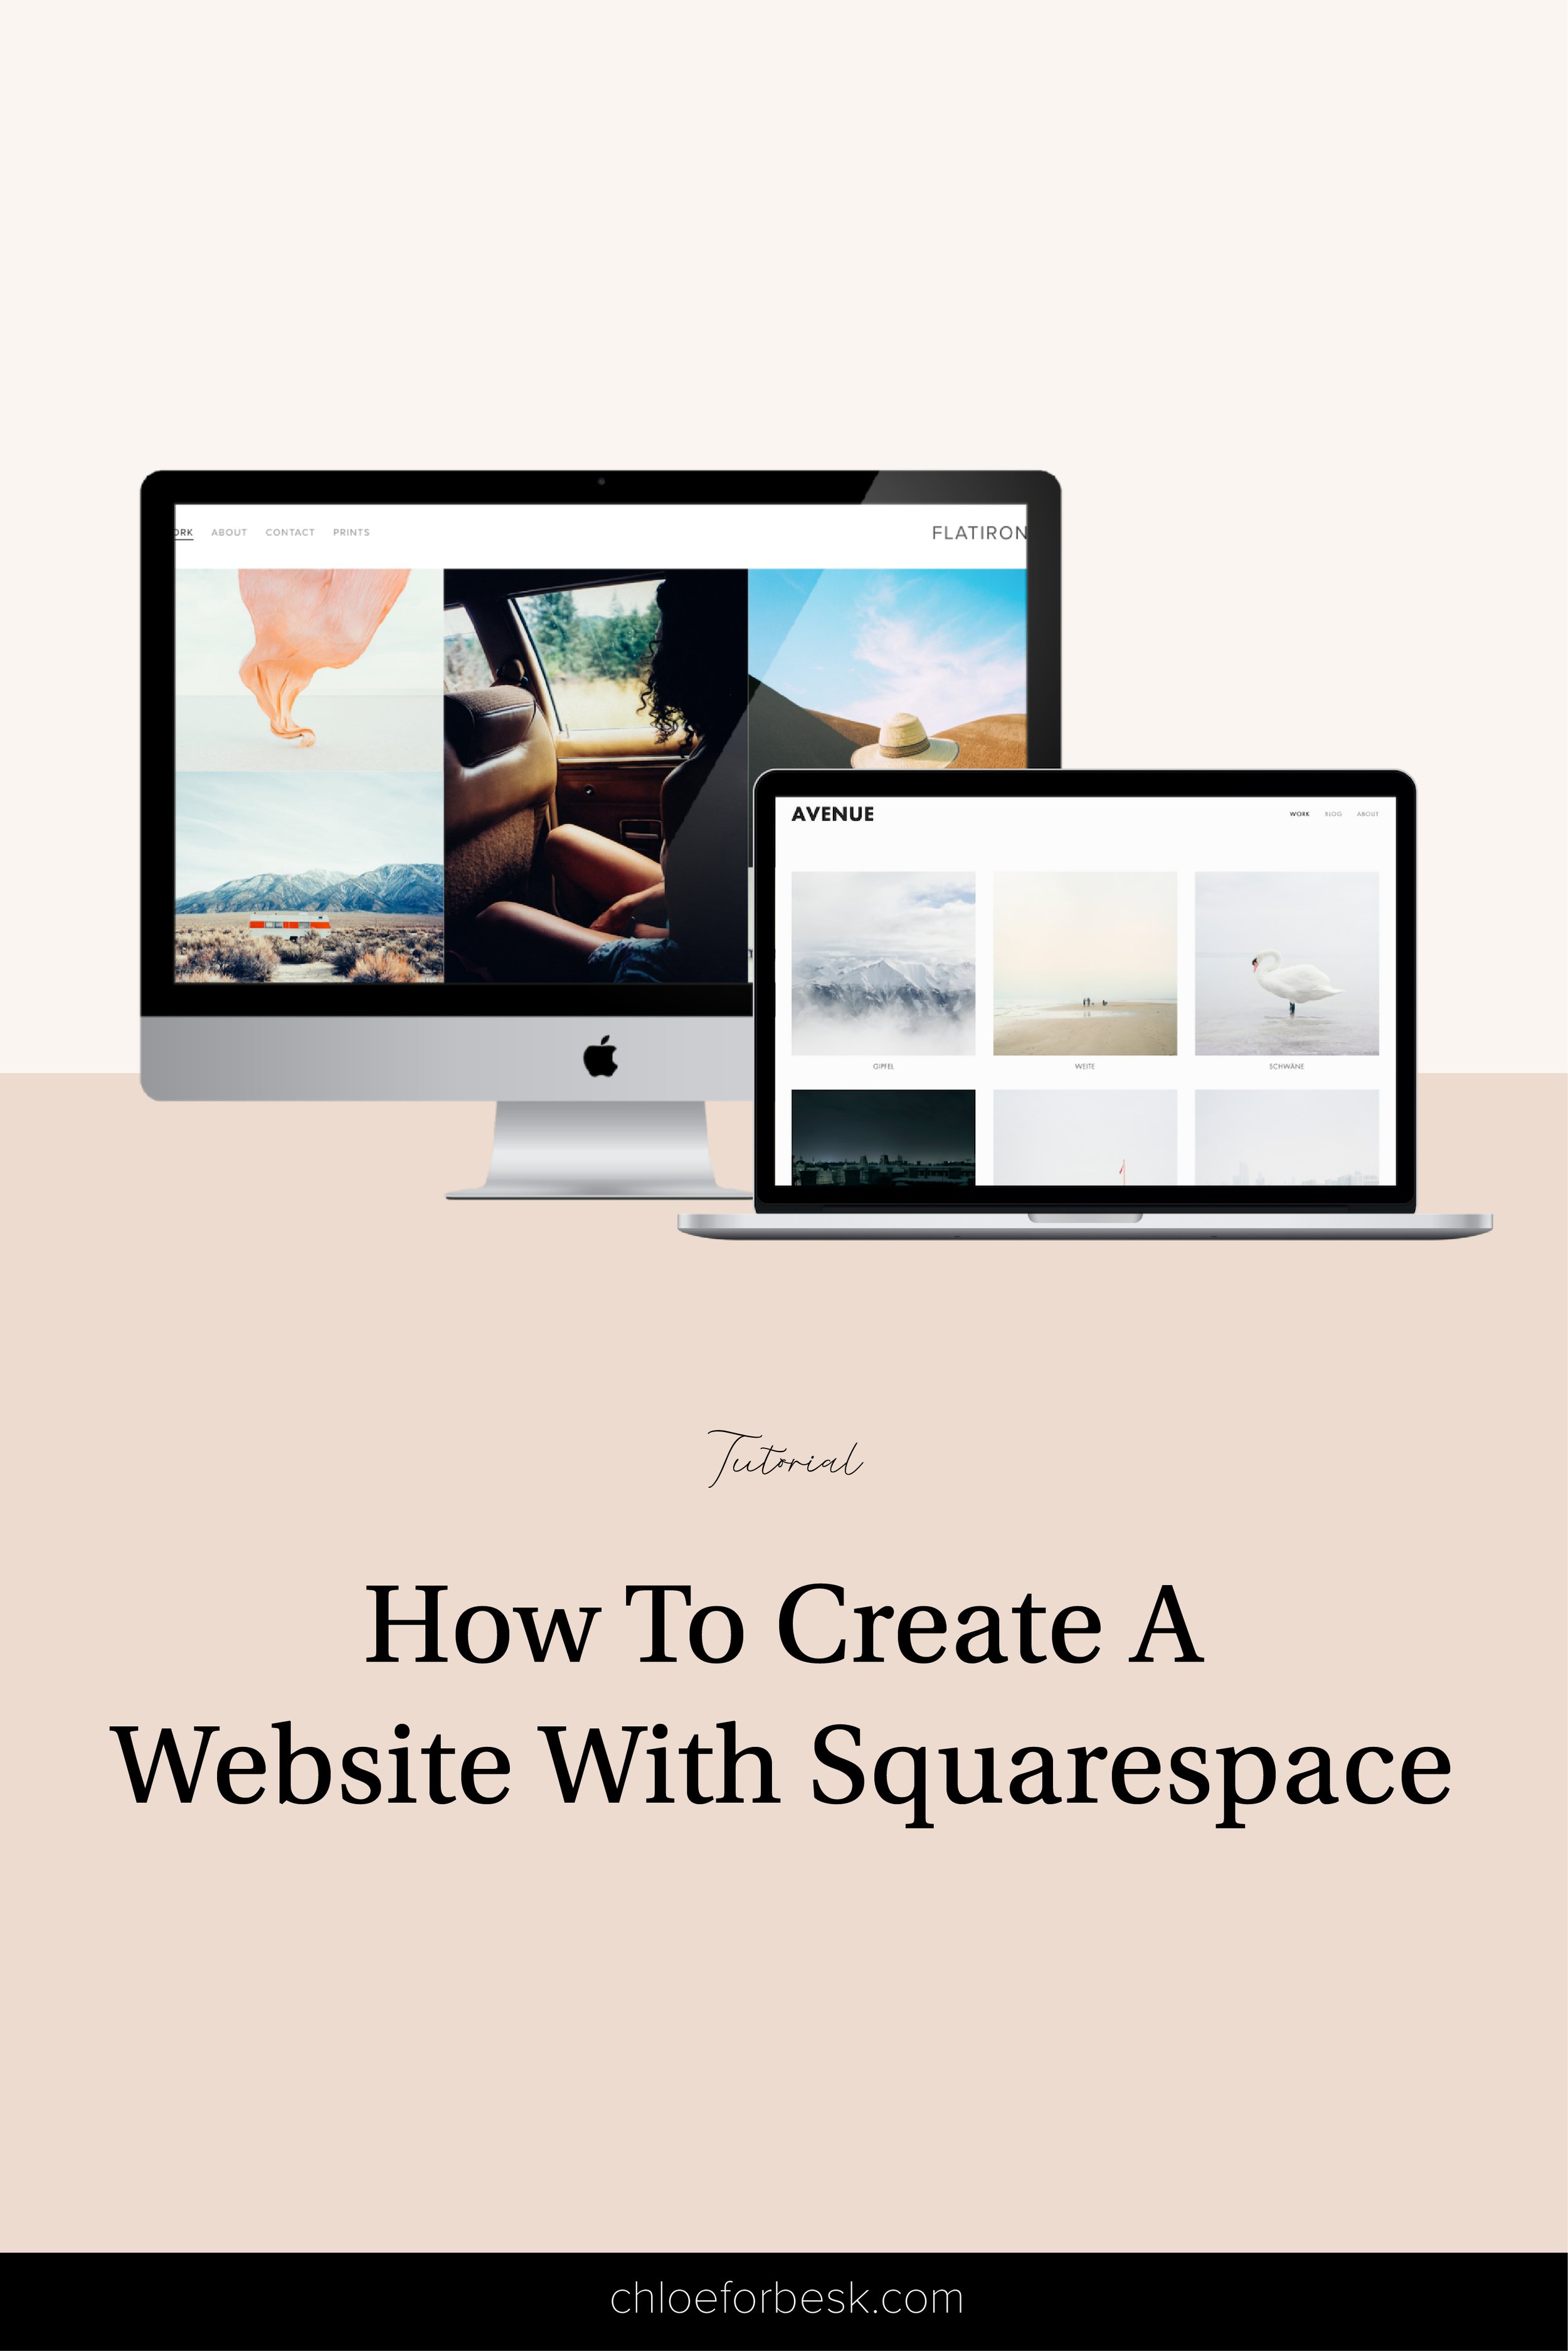 How To Create A Website with Squarespace 1.png